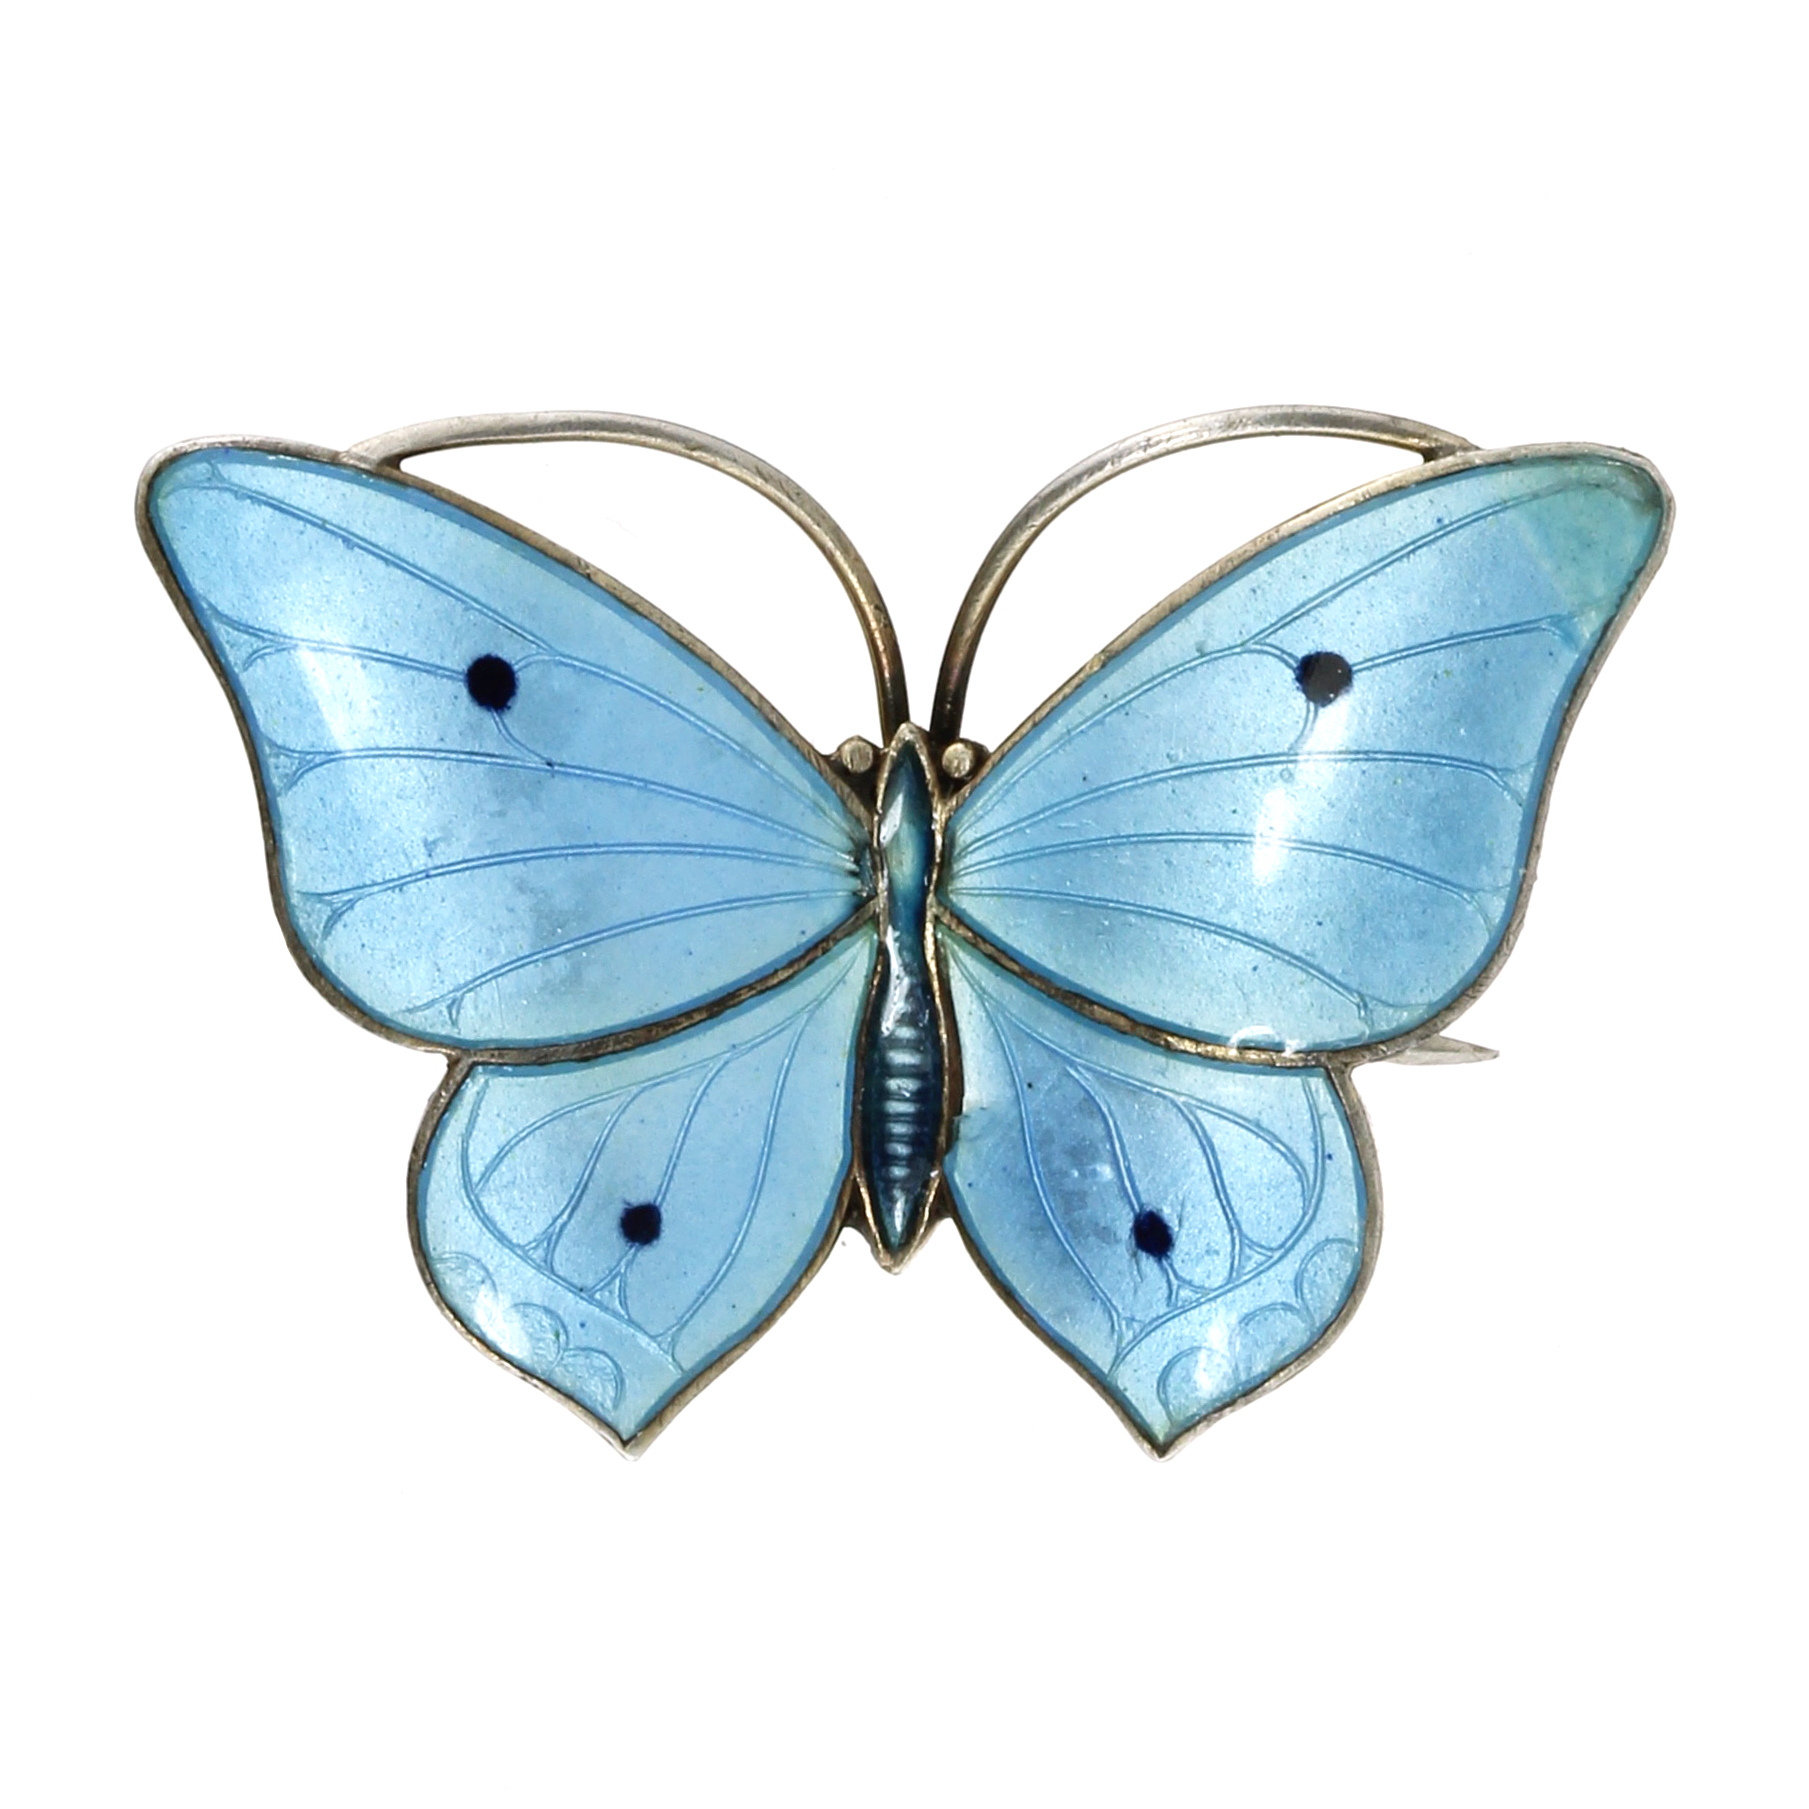 Los 49 - AN ANTIQUE ENAMELLED SILVER BUTTERFLY BROOCH, MARIUS HAMMER, NORWAY CIRCA 1910 in silver,